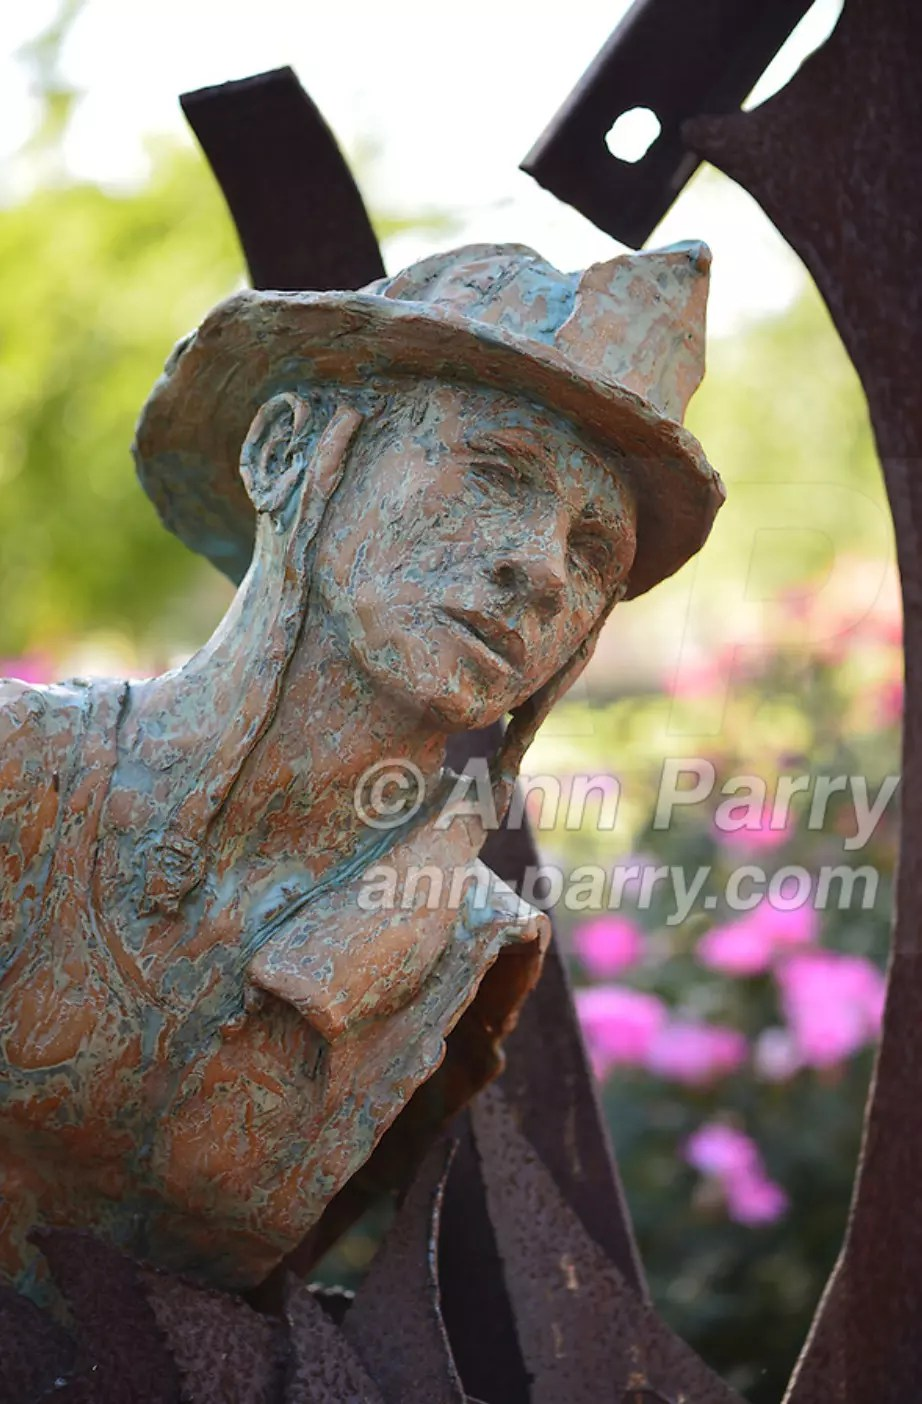 Garden City, NY, U.S. - August 29, 2014 - Adelphi University campus outdoor sculpture in terra cotta and metal of 9/11 theme by artists artist Dan Christoffel in summer